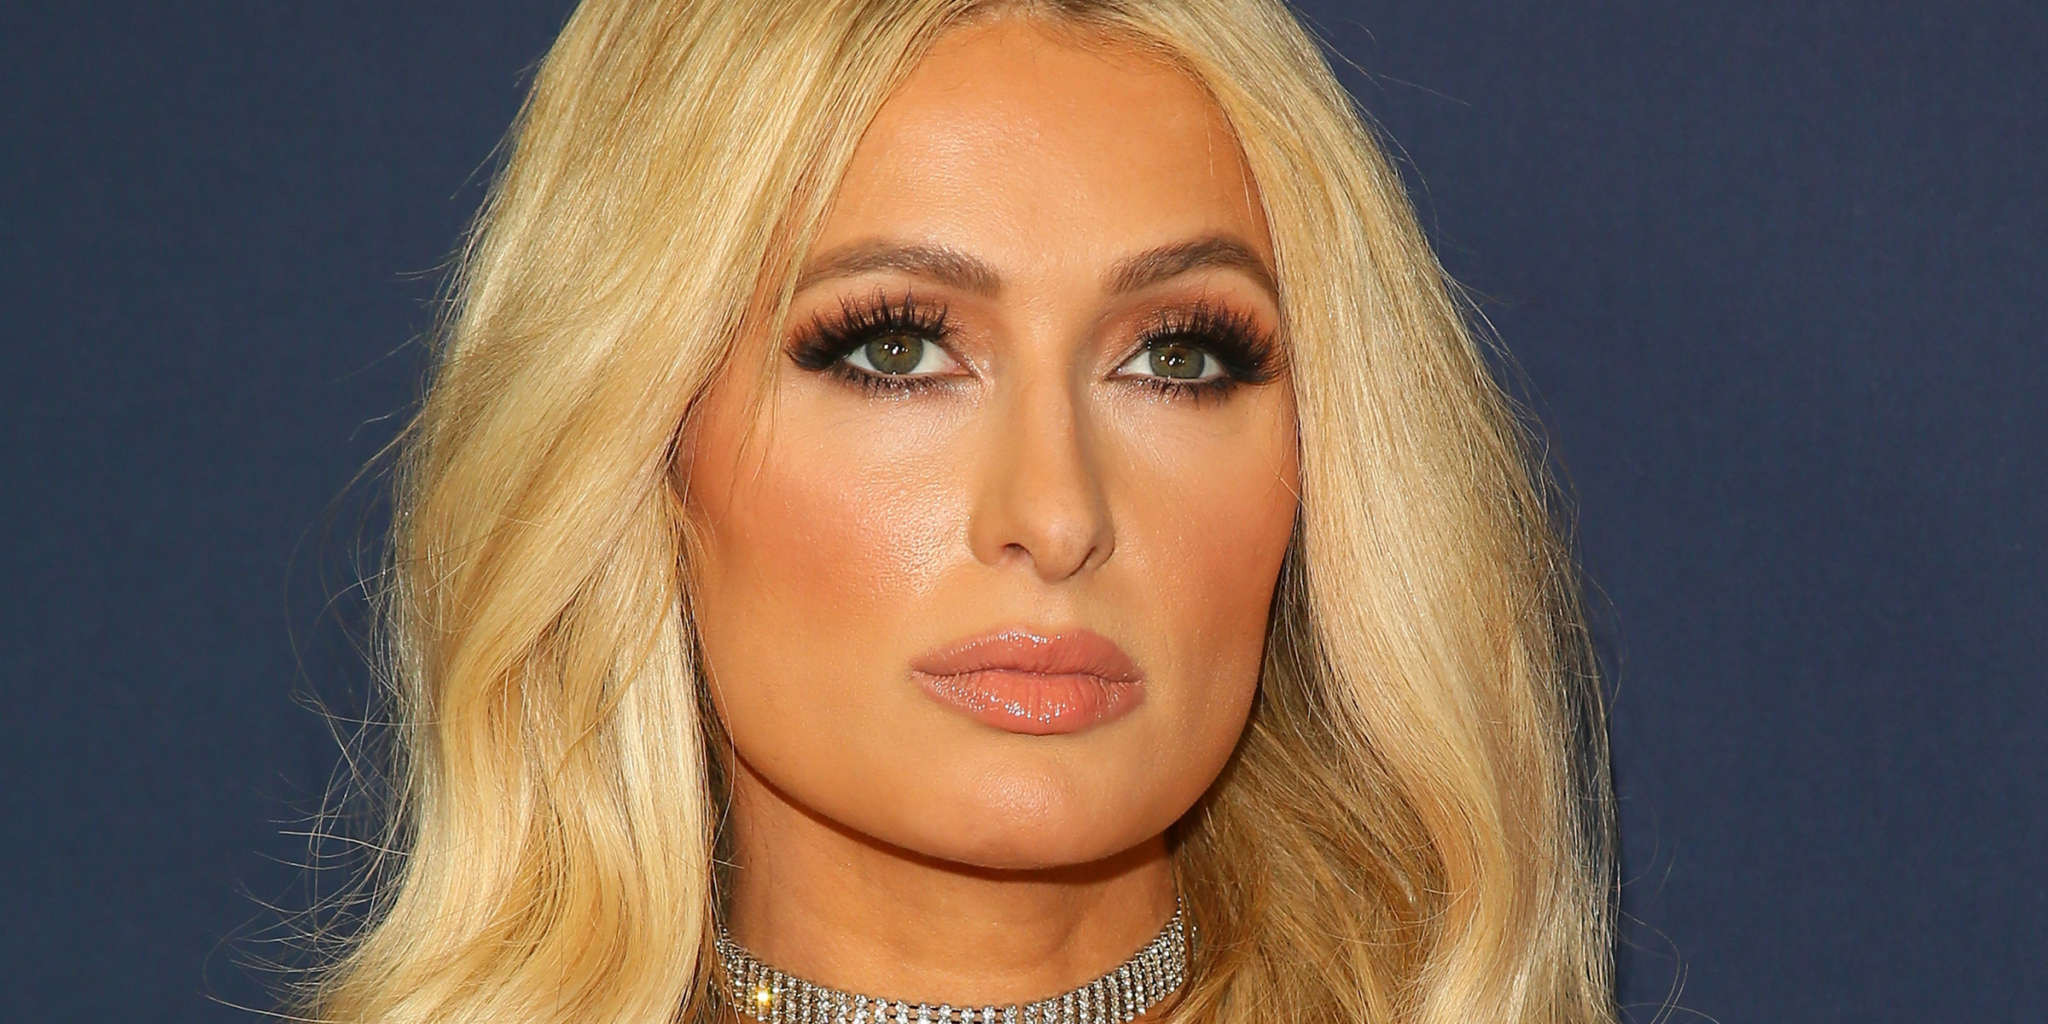 paris-hilton-says-she-doesnt-hate-her-parents-for-sending-her-at-boarding-school-where-she-was-abused-for-almost-a-year